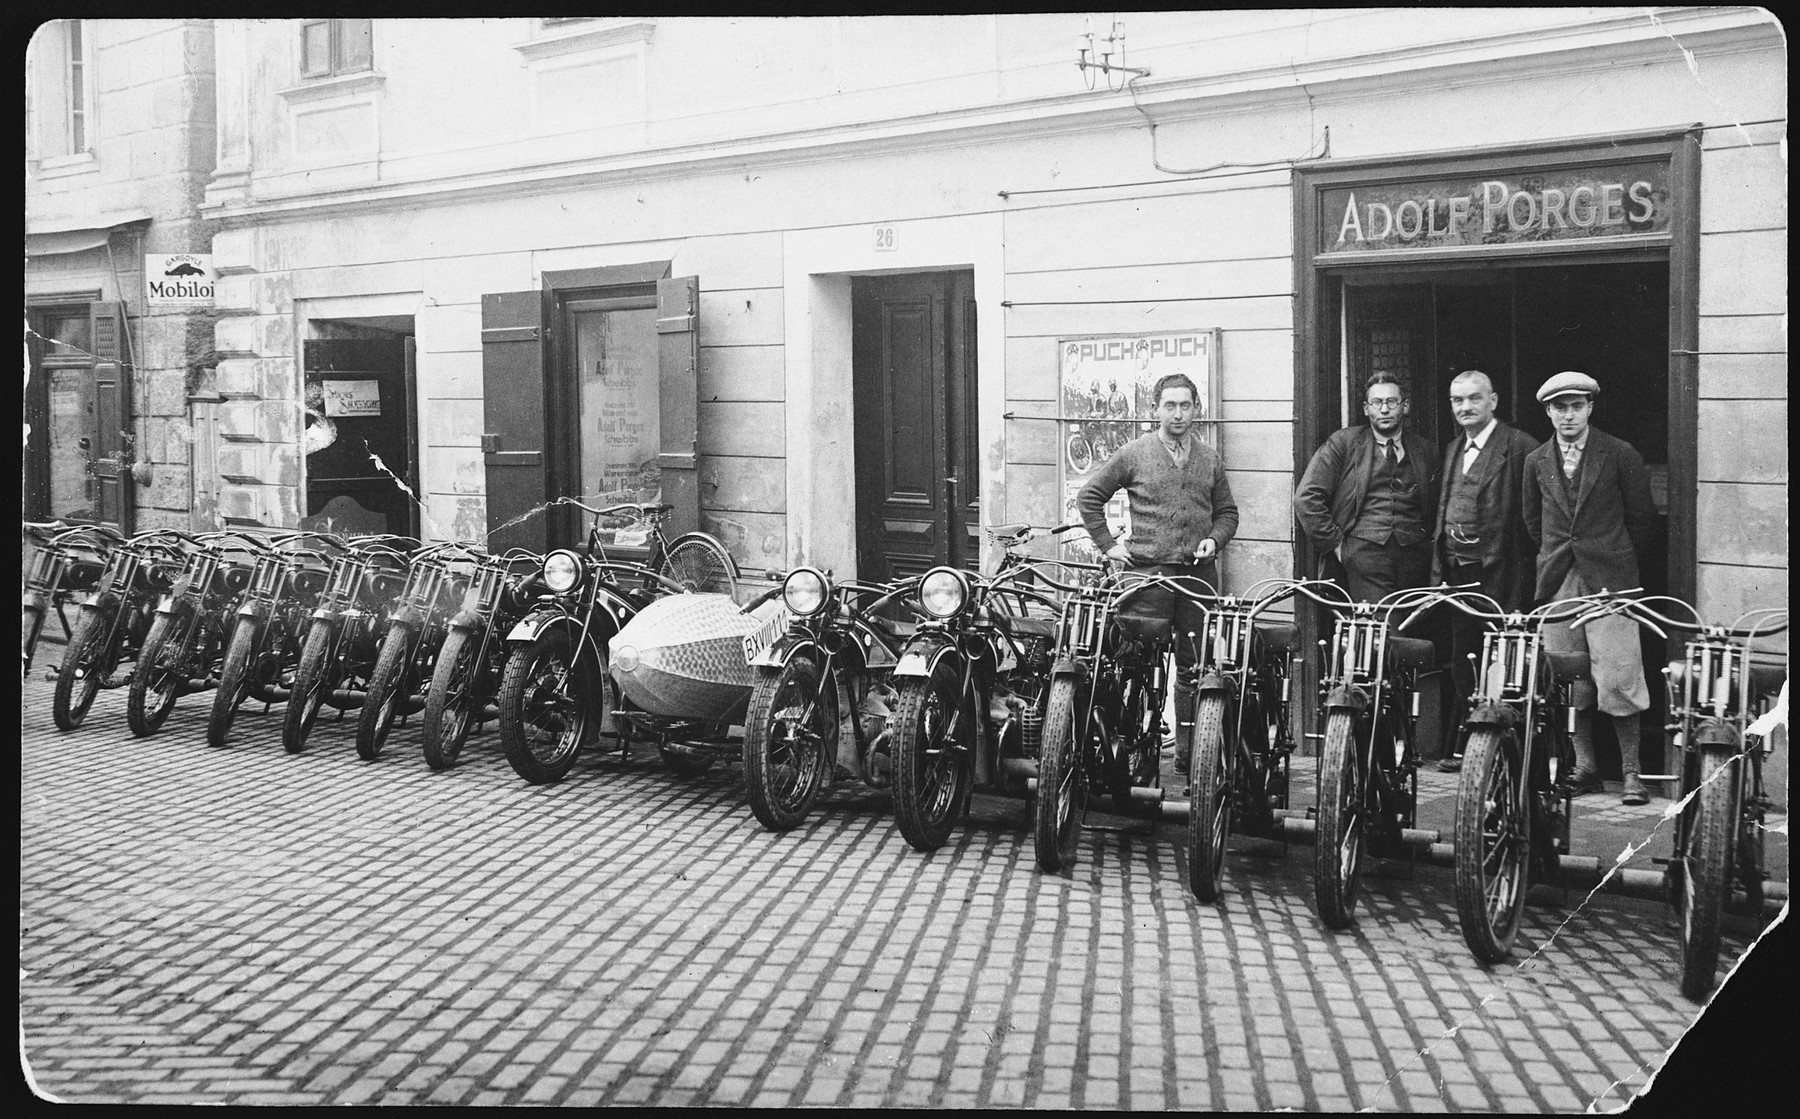 An Austrian-Jewish family stands before a row of motorcycles parked in front of their department store.  Pictured are Ernst, Hugo, Joseph and Hermann Porges.